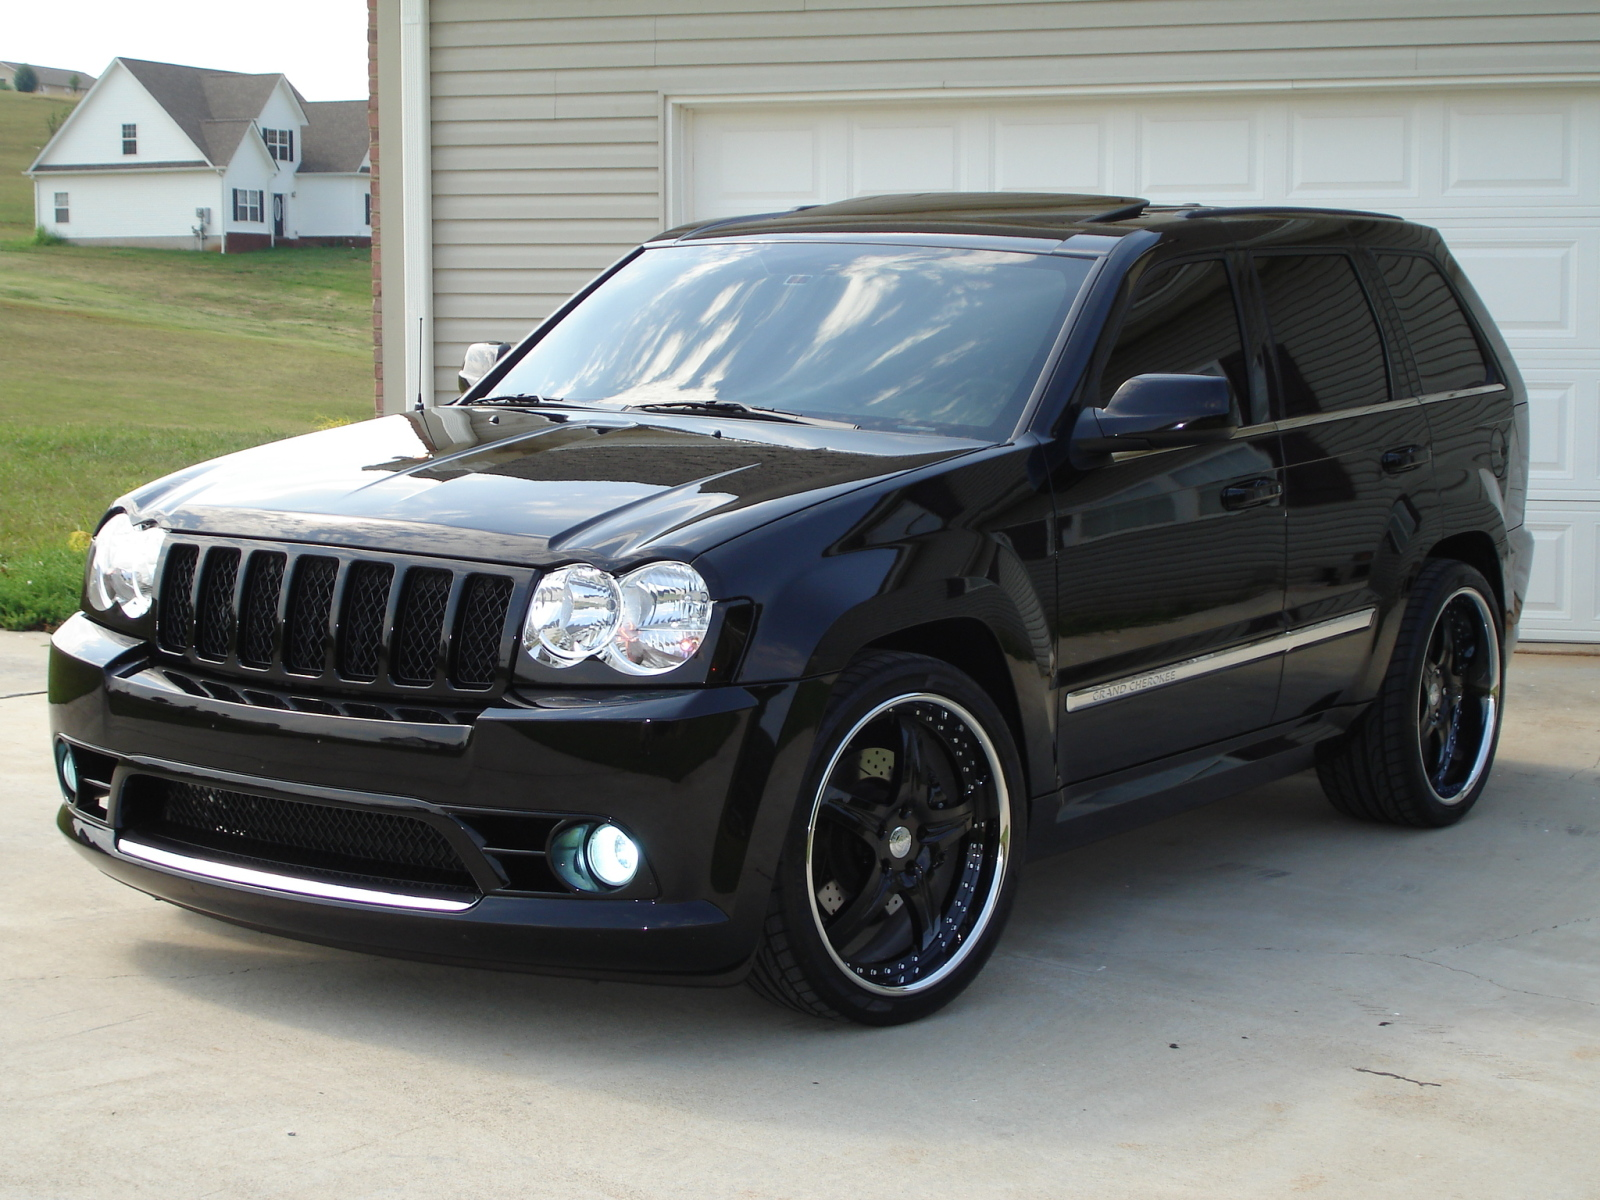 The 2006 Jeep Cherokee SRT8 #ThrwBkThrsdy